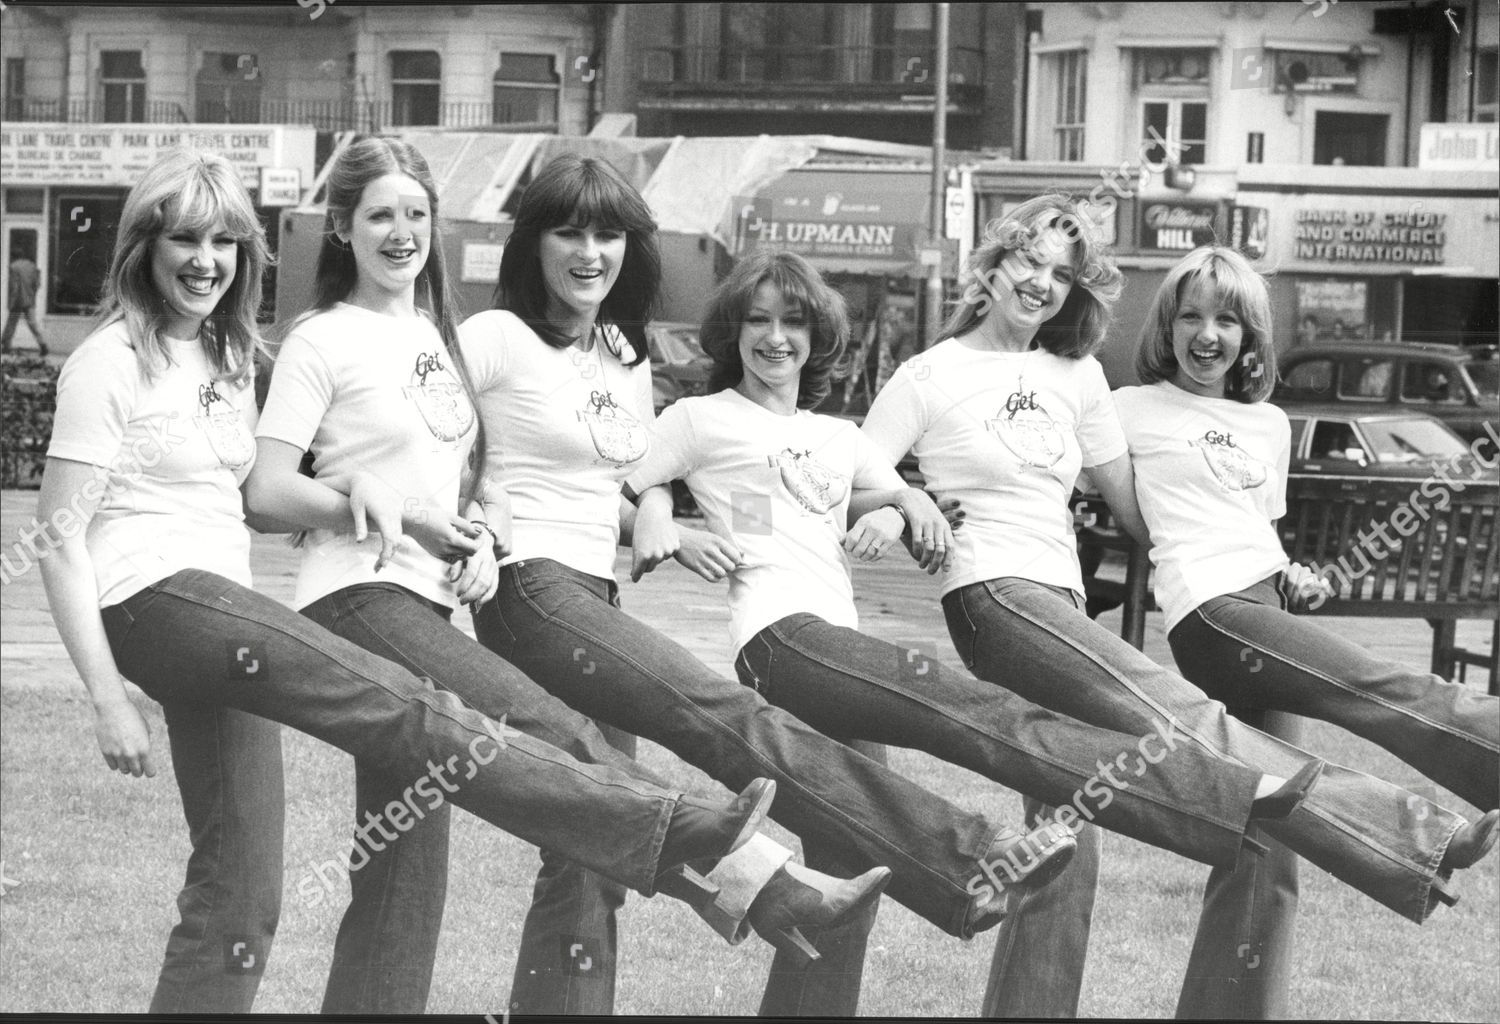 Stock photo of Third Edition Dance Troup L To R Dee Smith (26) Wendy Young (24) Ali Mintoe(26) Roslyn Cole (25) Julie Dean (24) And Lynda Johns (25).